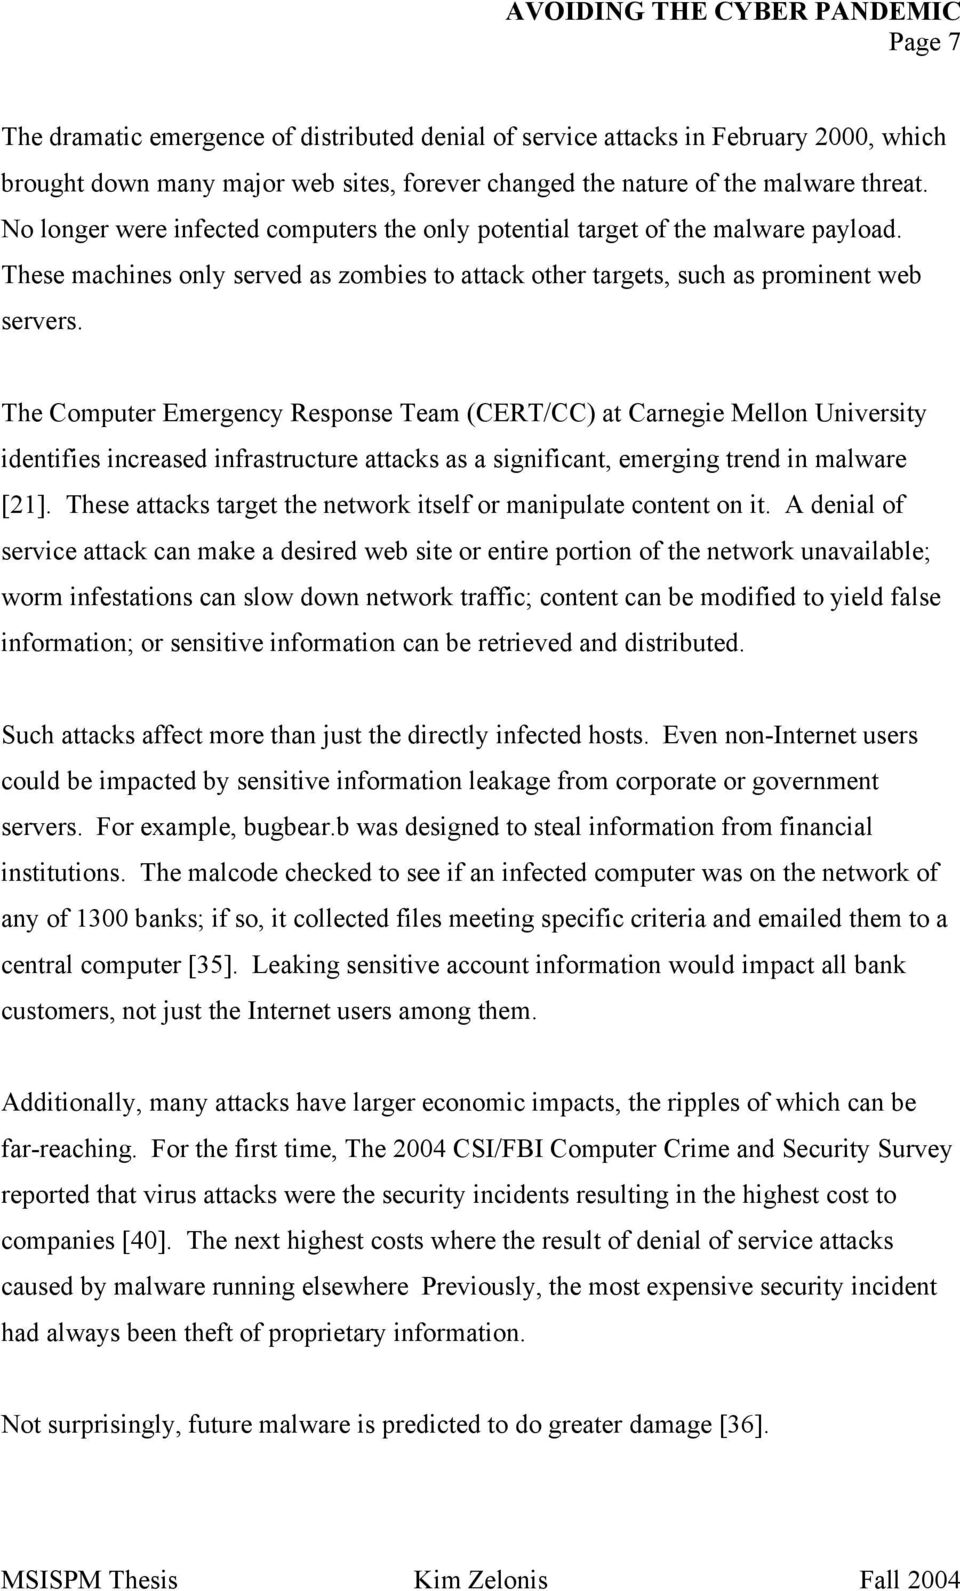 The Computer Emergency Response Team (CERT/CC) at Carnegie Mellon University identifies increased infrastructure attacks as a significant, emerging trend in malware [21].